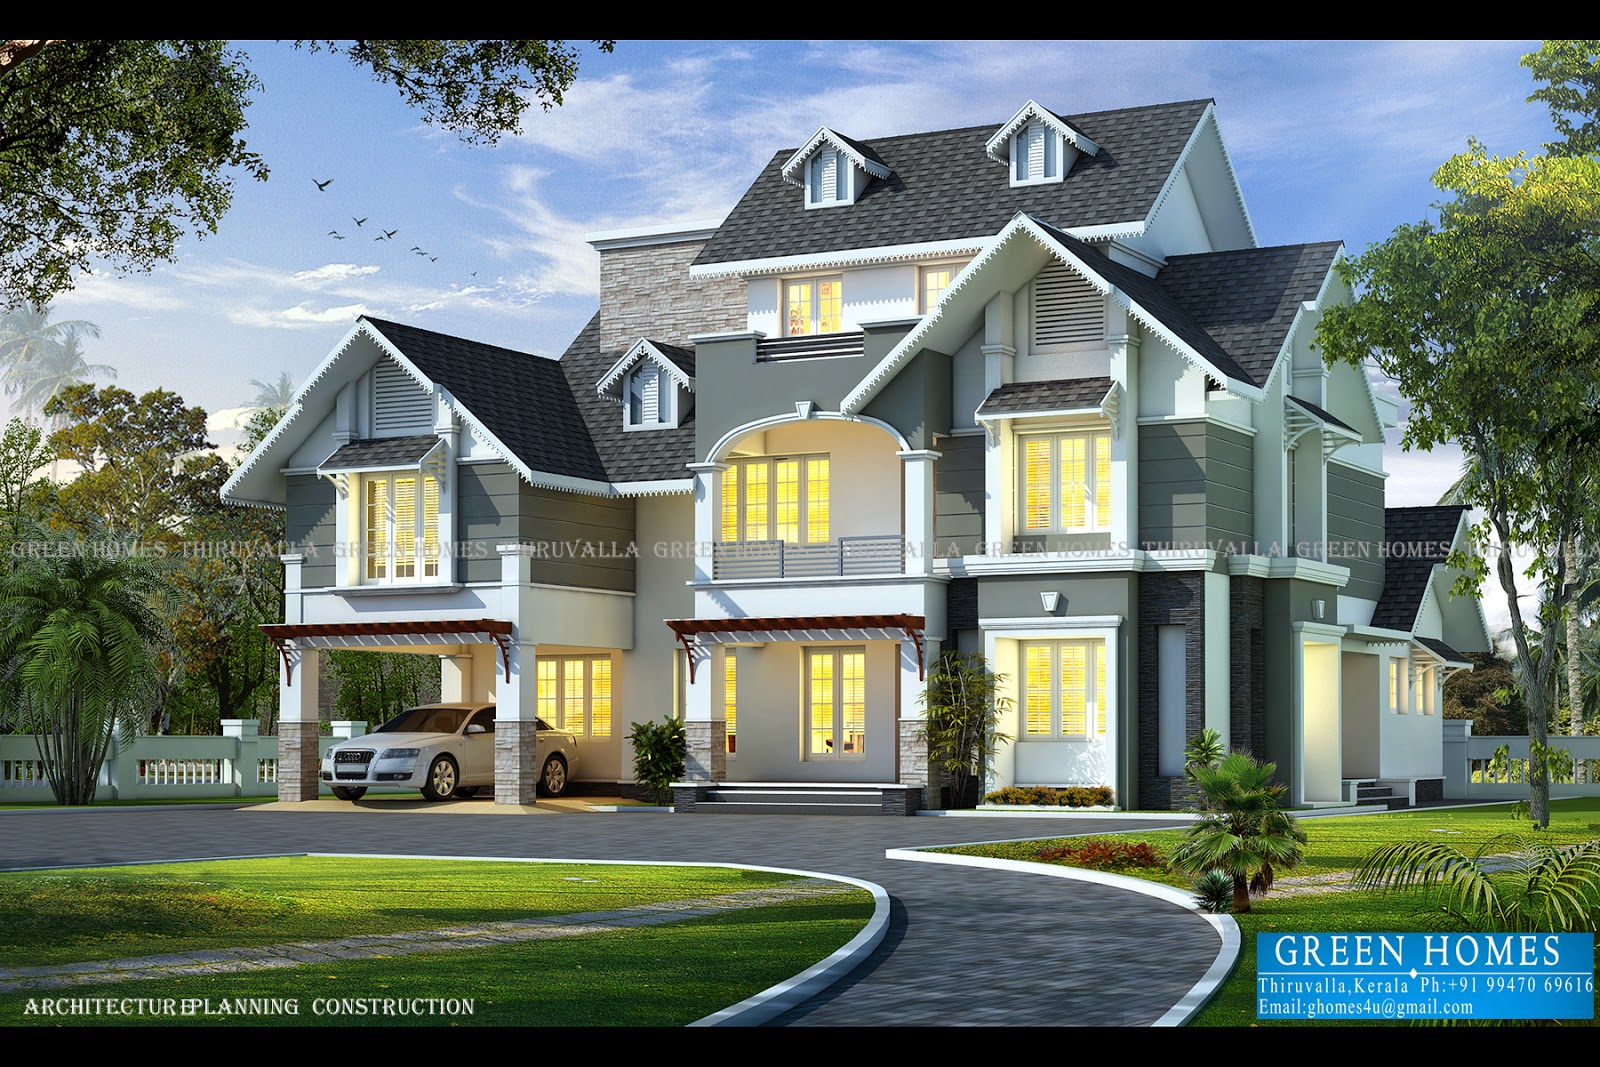 Green homes awesome european style house in 3650 sq feet for Modern kerala style house plans with photos